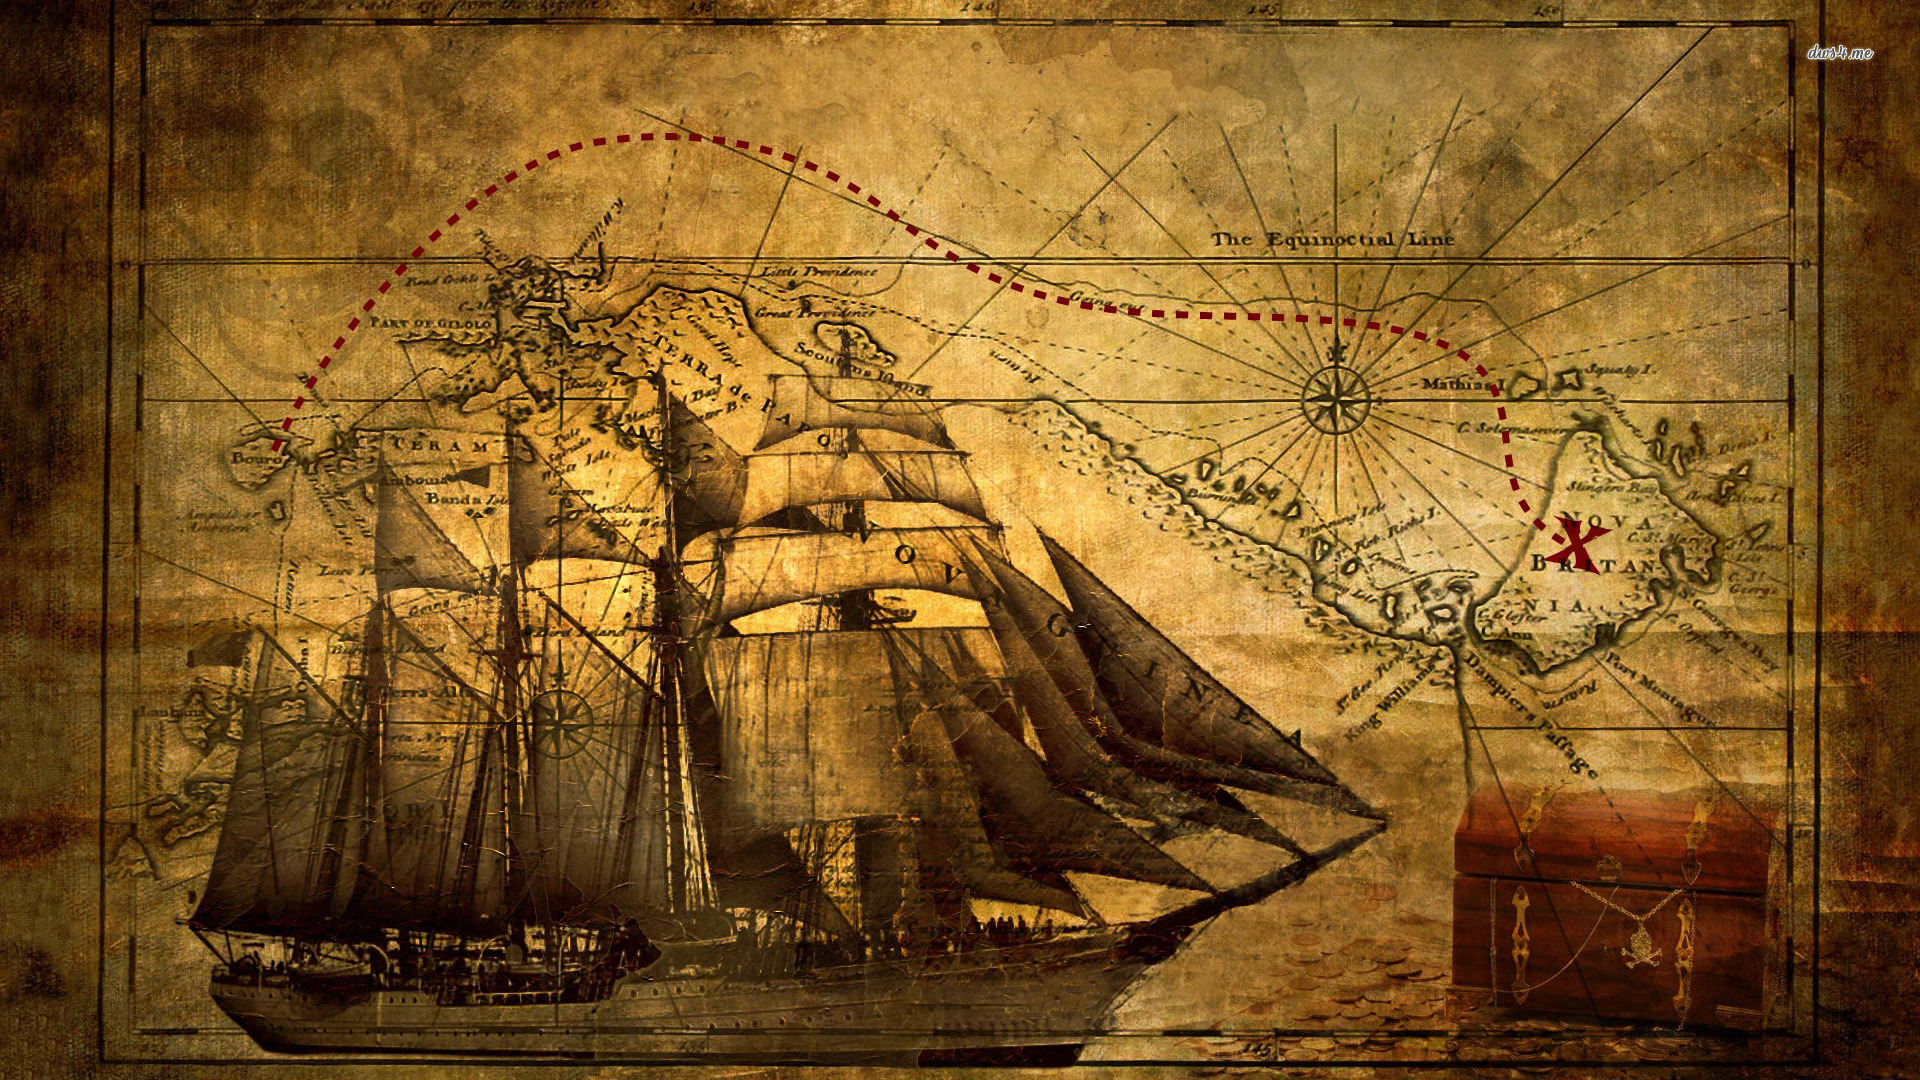 Old Ship With Map Wallpaper   Digital Art Wallpapers   #8710